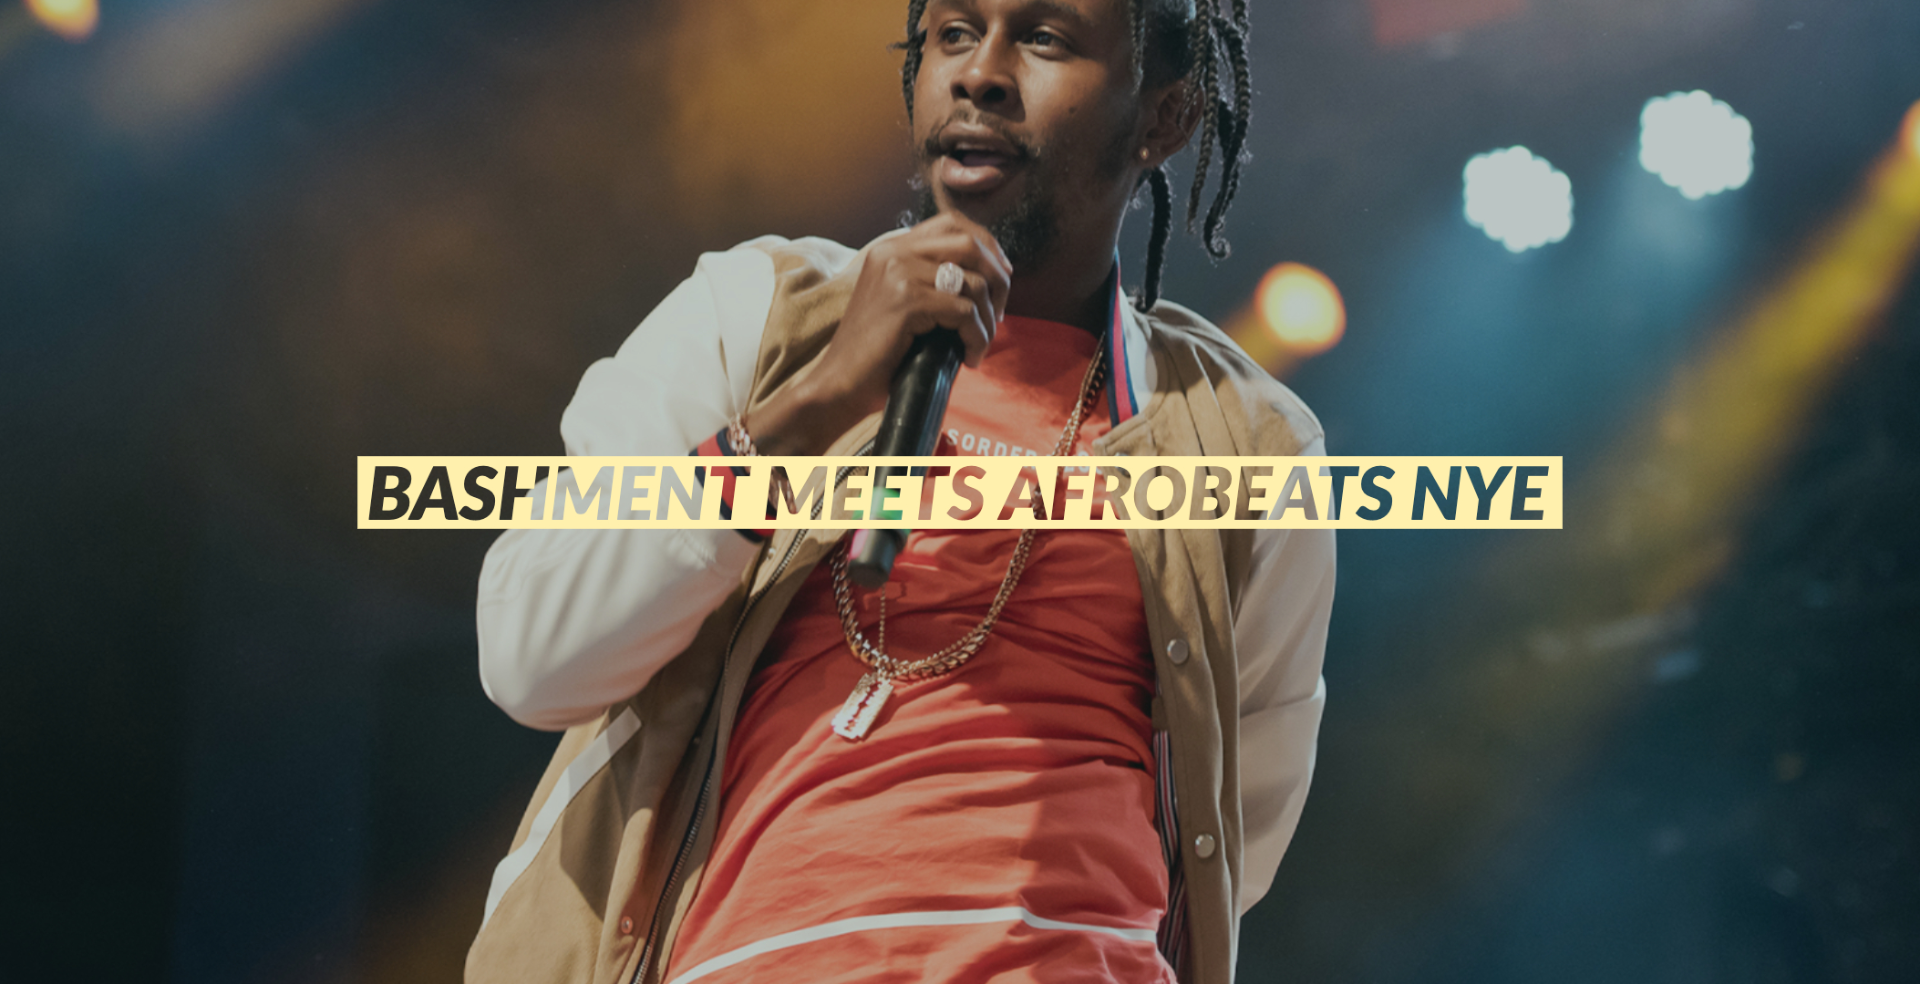 Bashment Meets Afrobeats NYE Party